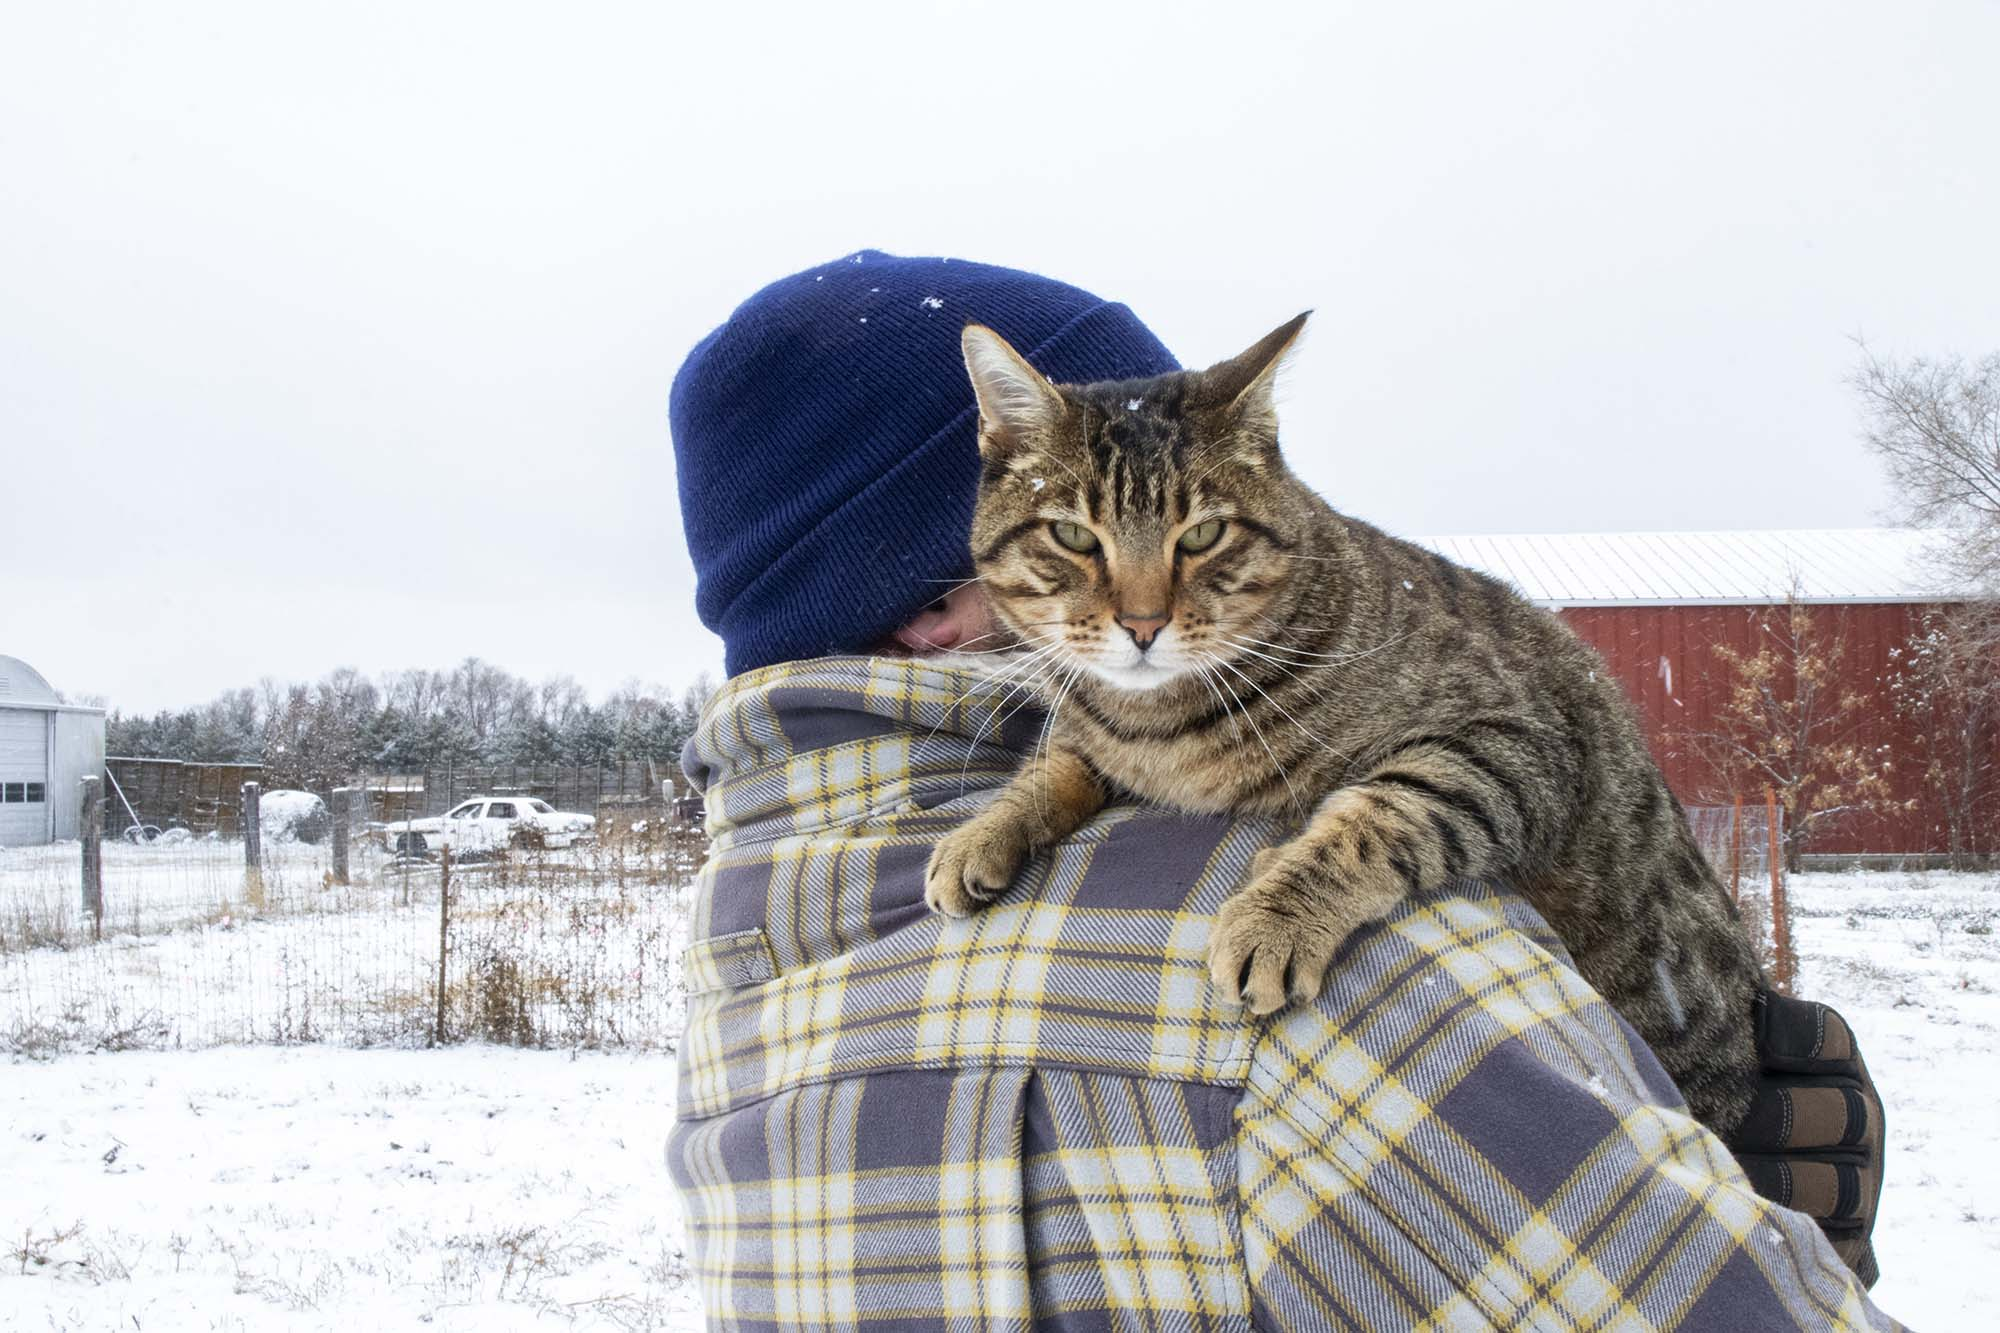 Matt Geraets and farm cat Gerald at B&G Produce, 20 miles east of Pierre, South Dakota.